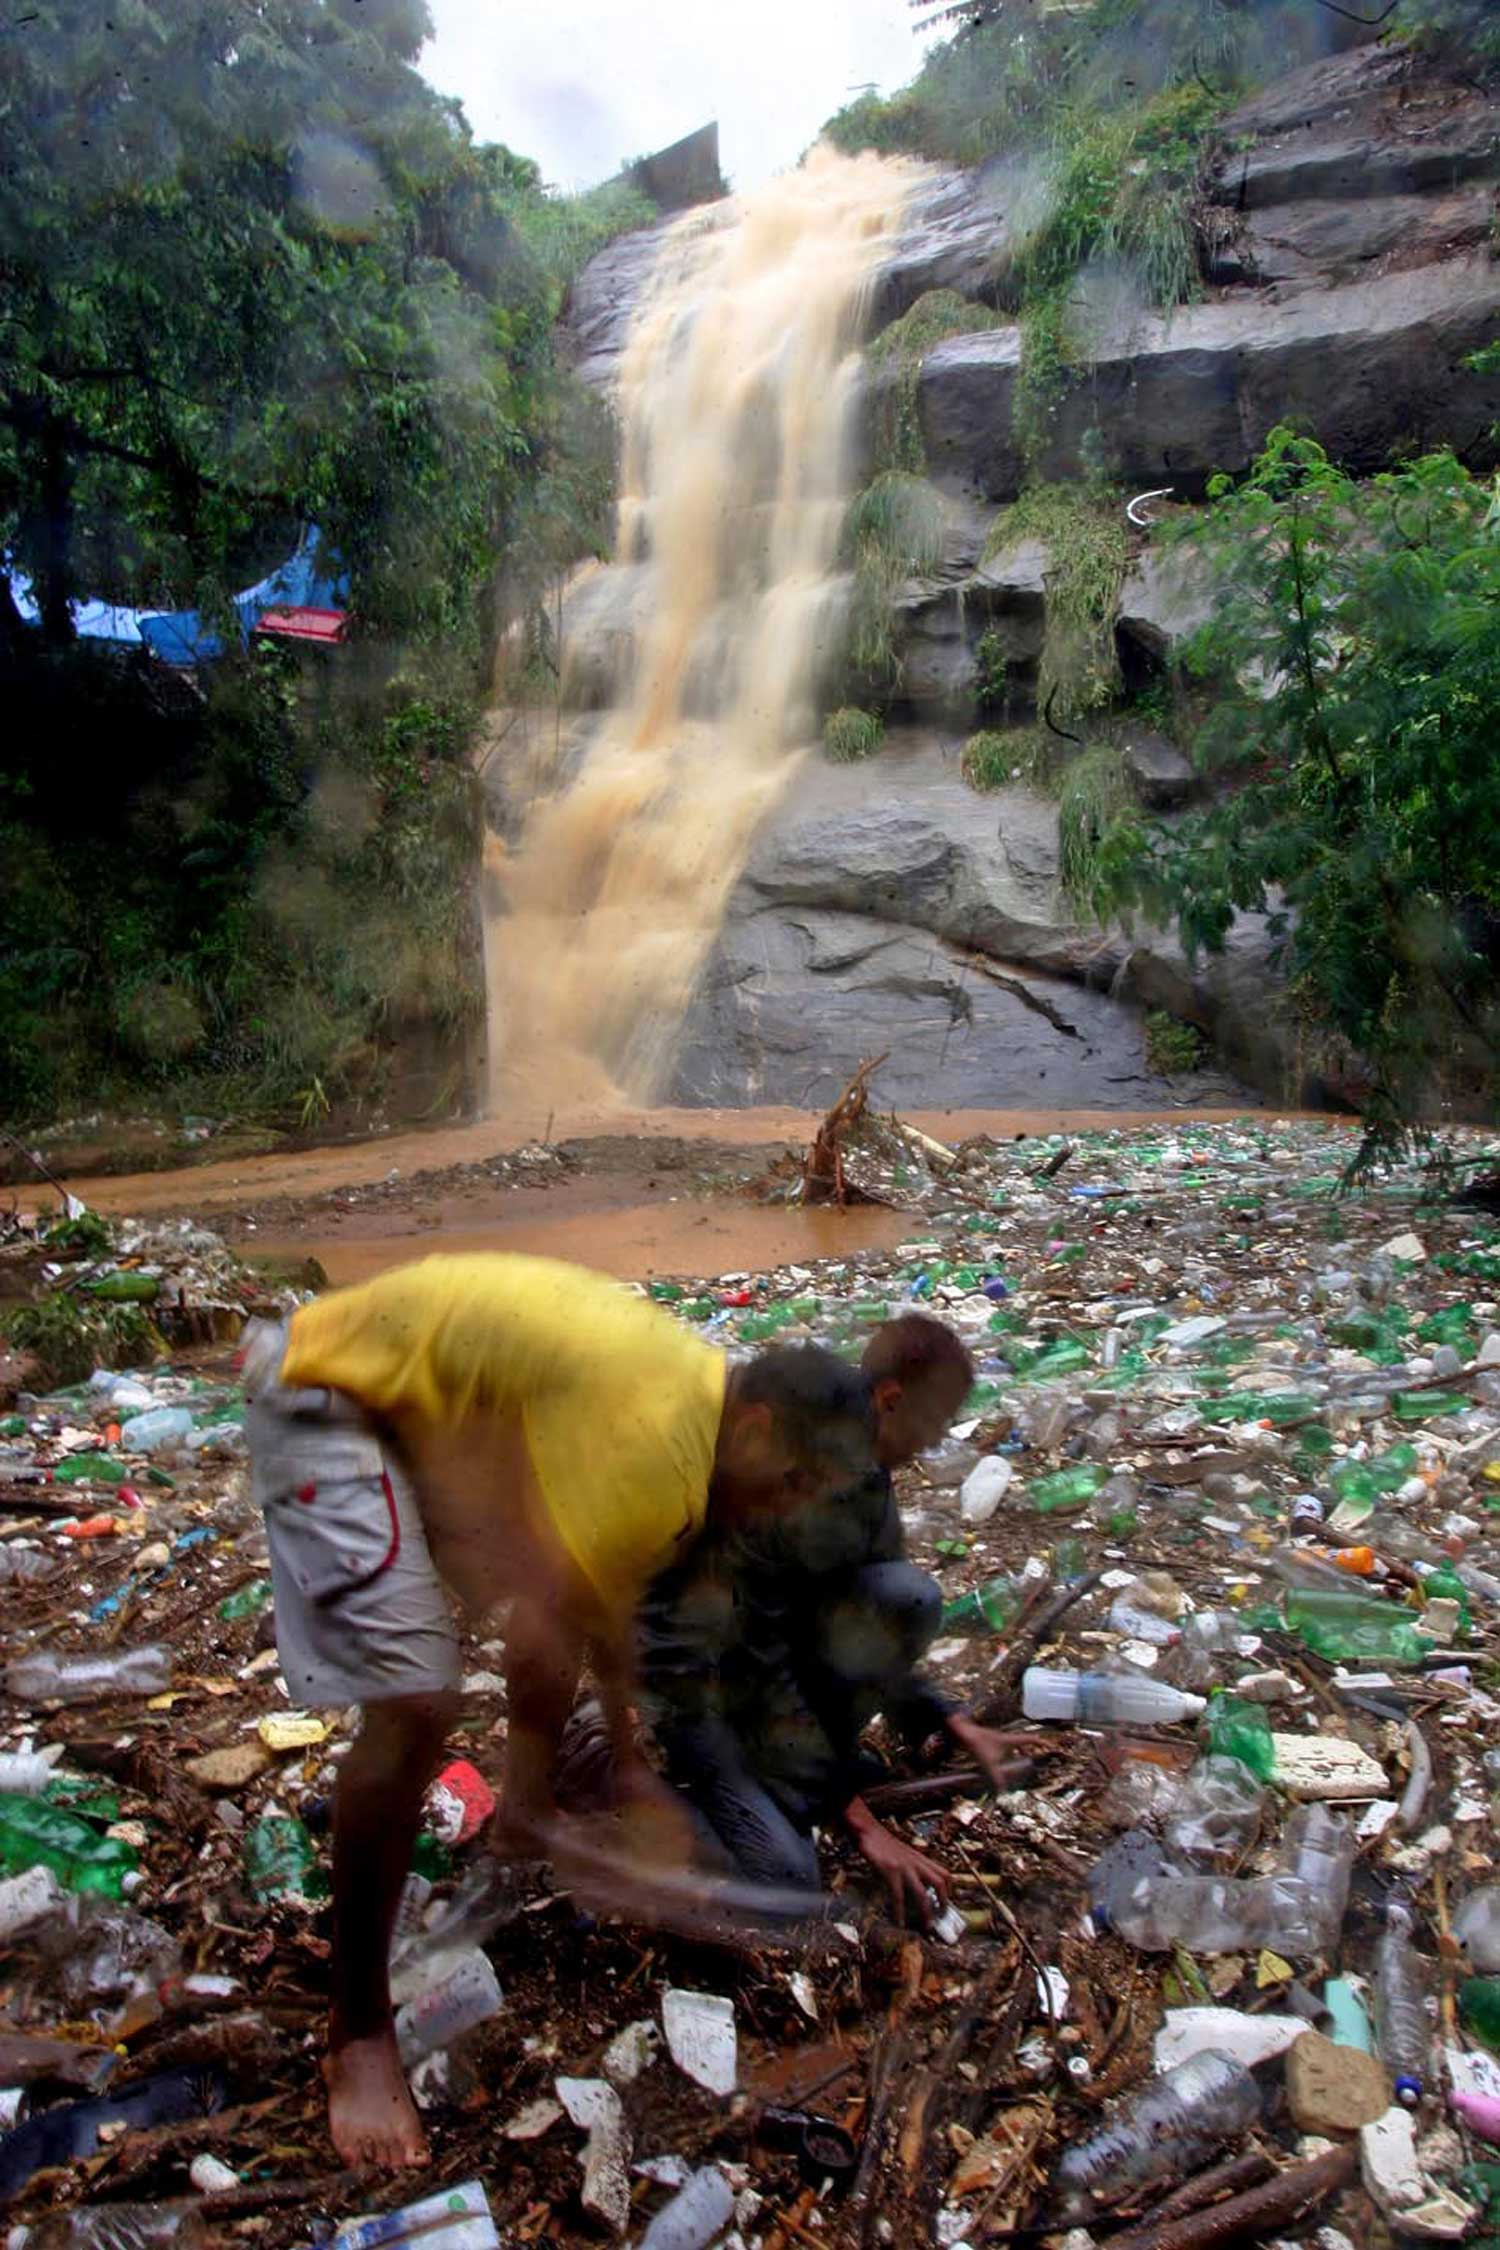 The local mountain stream, the Cascata, which eventually joins the Guanabara Bay, is clean upon entering the neighbourhood and gradually transforms in to an open sewer during the course of passing through Formiga.